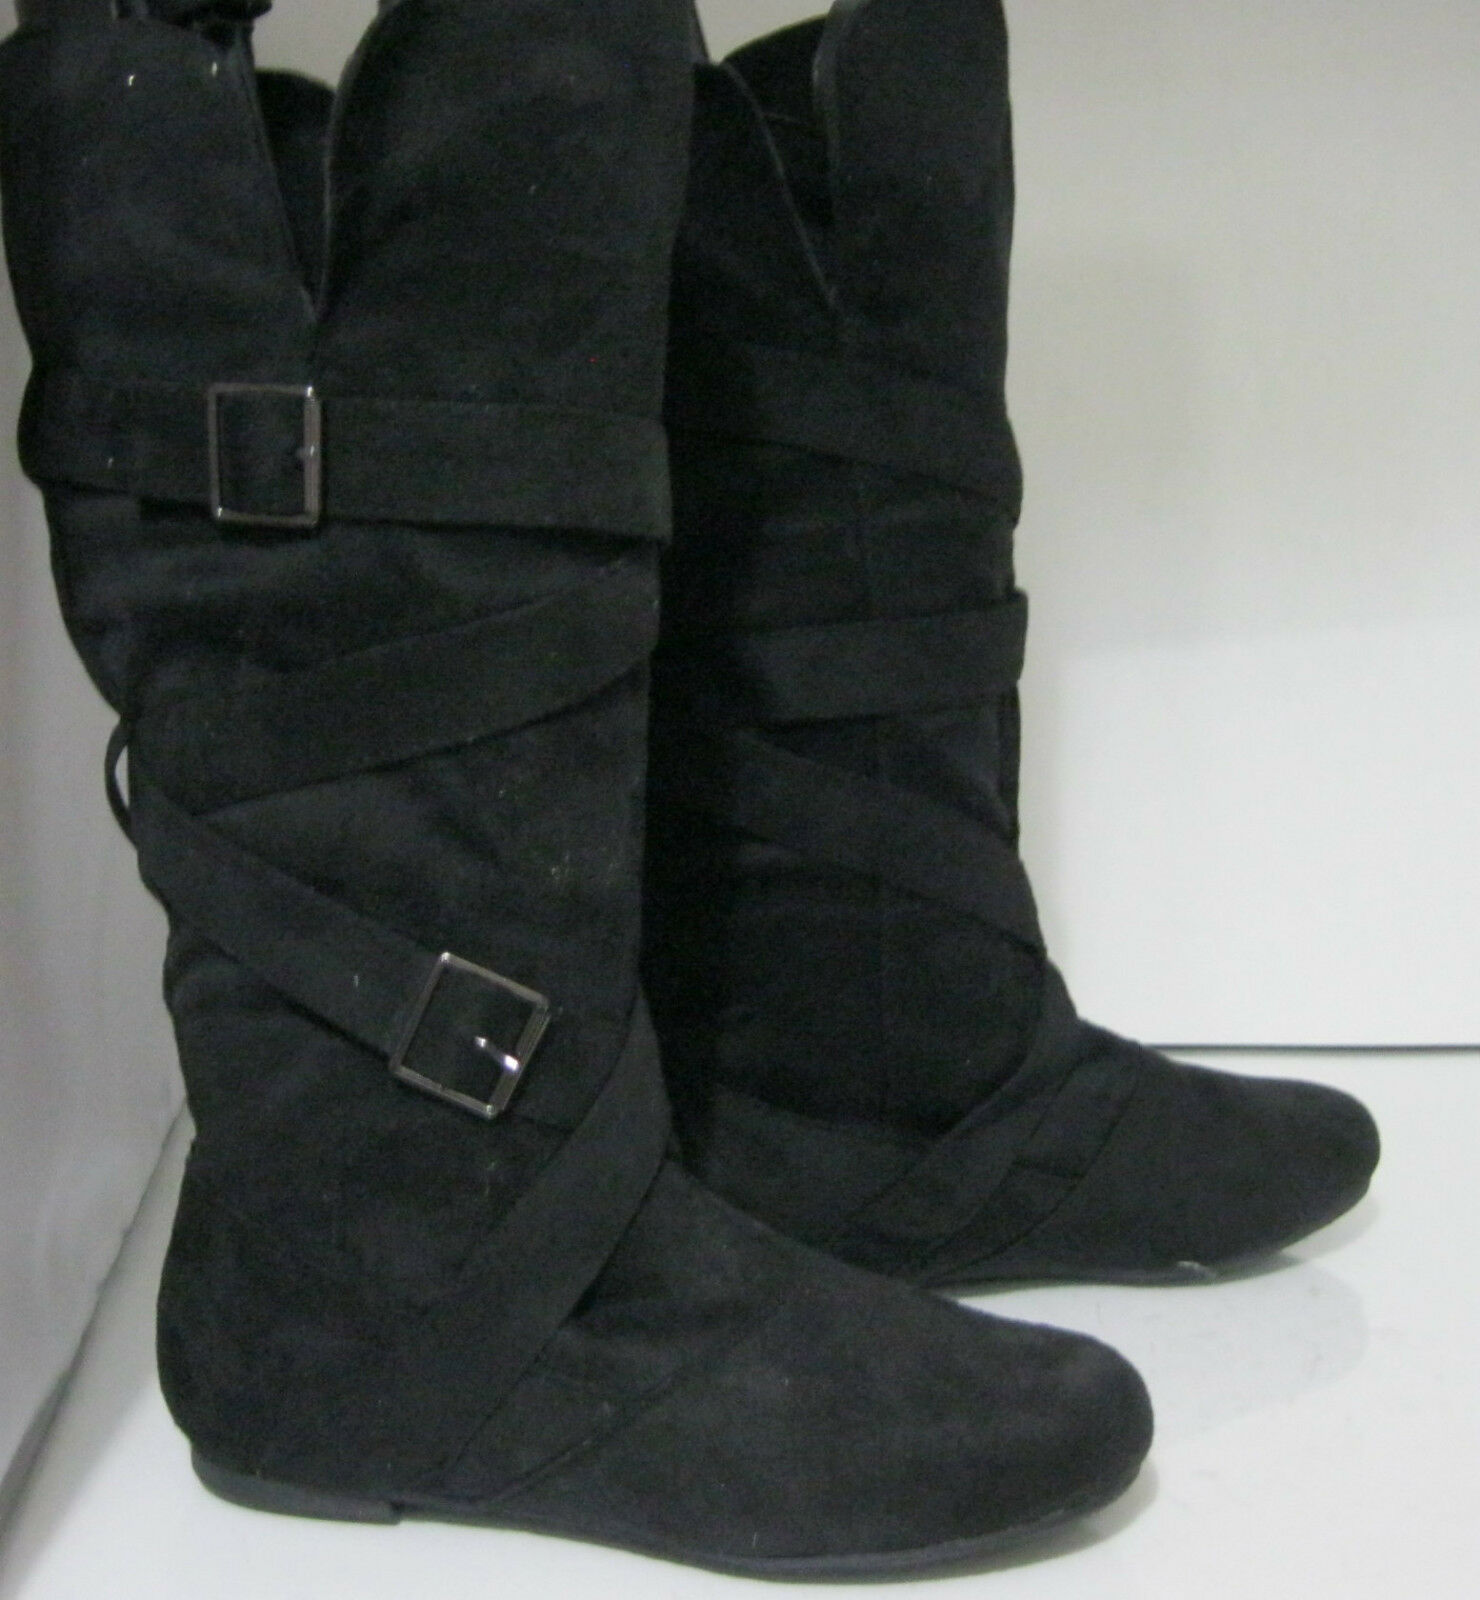 NEW Womens Black Round Toe Side Buckles Sexy Mid-Calf Boot Size 6.5